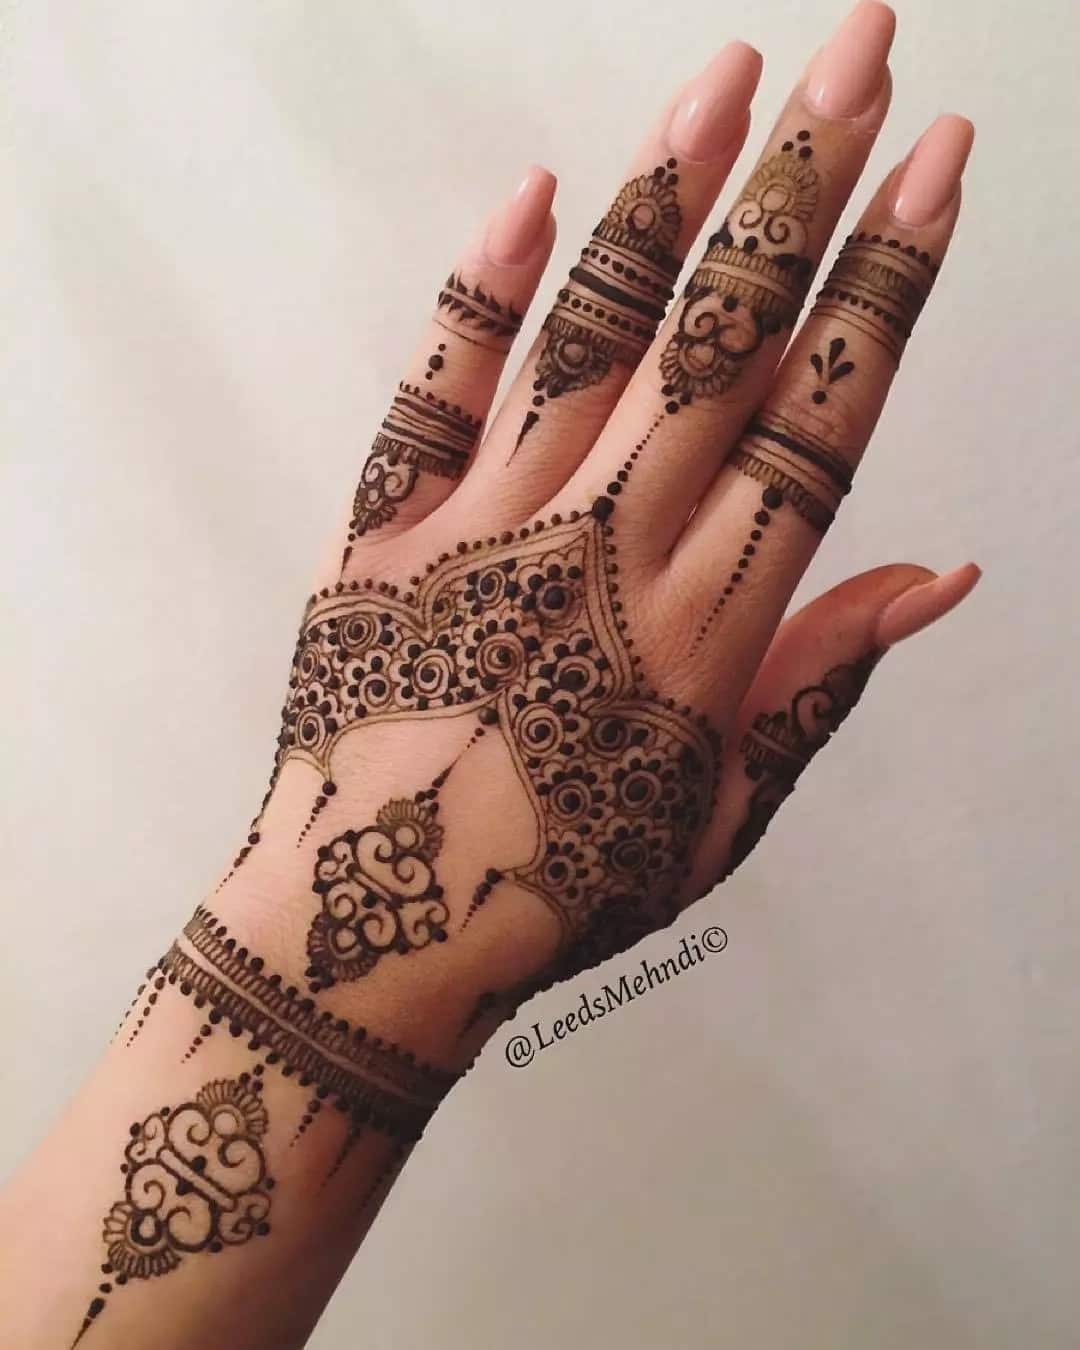 Best Henna Designs: Simple Black Henna Designs In